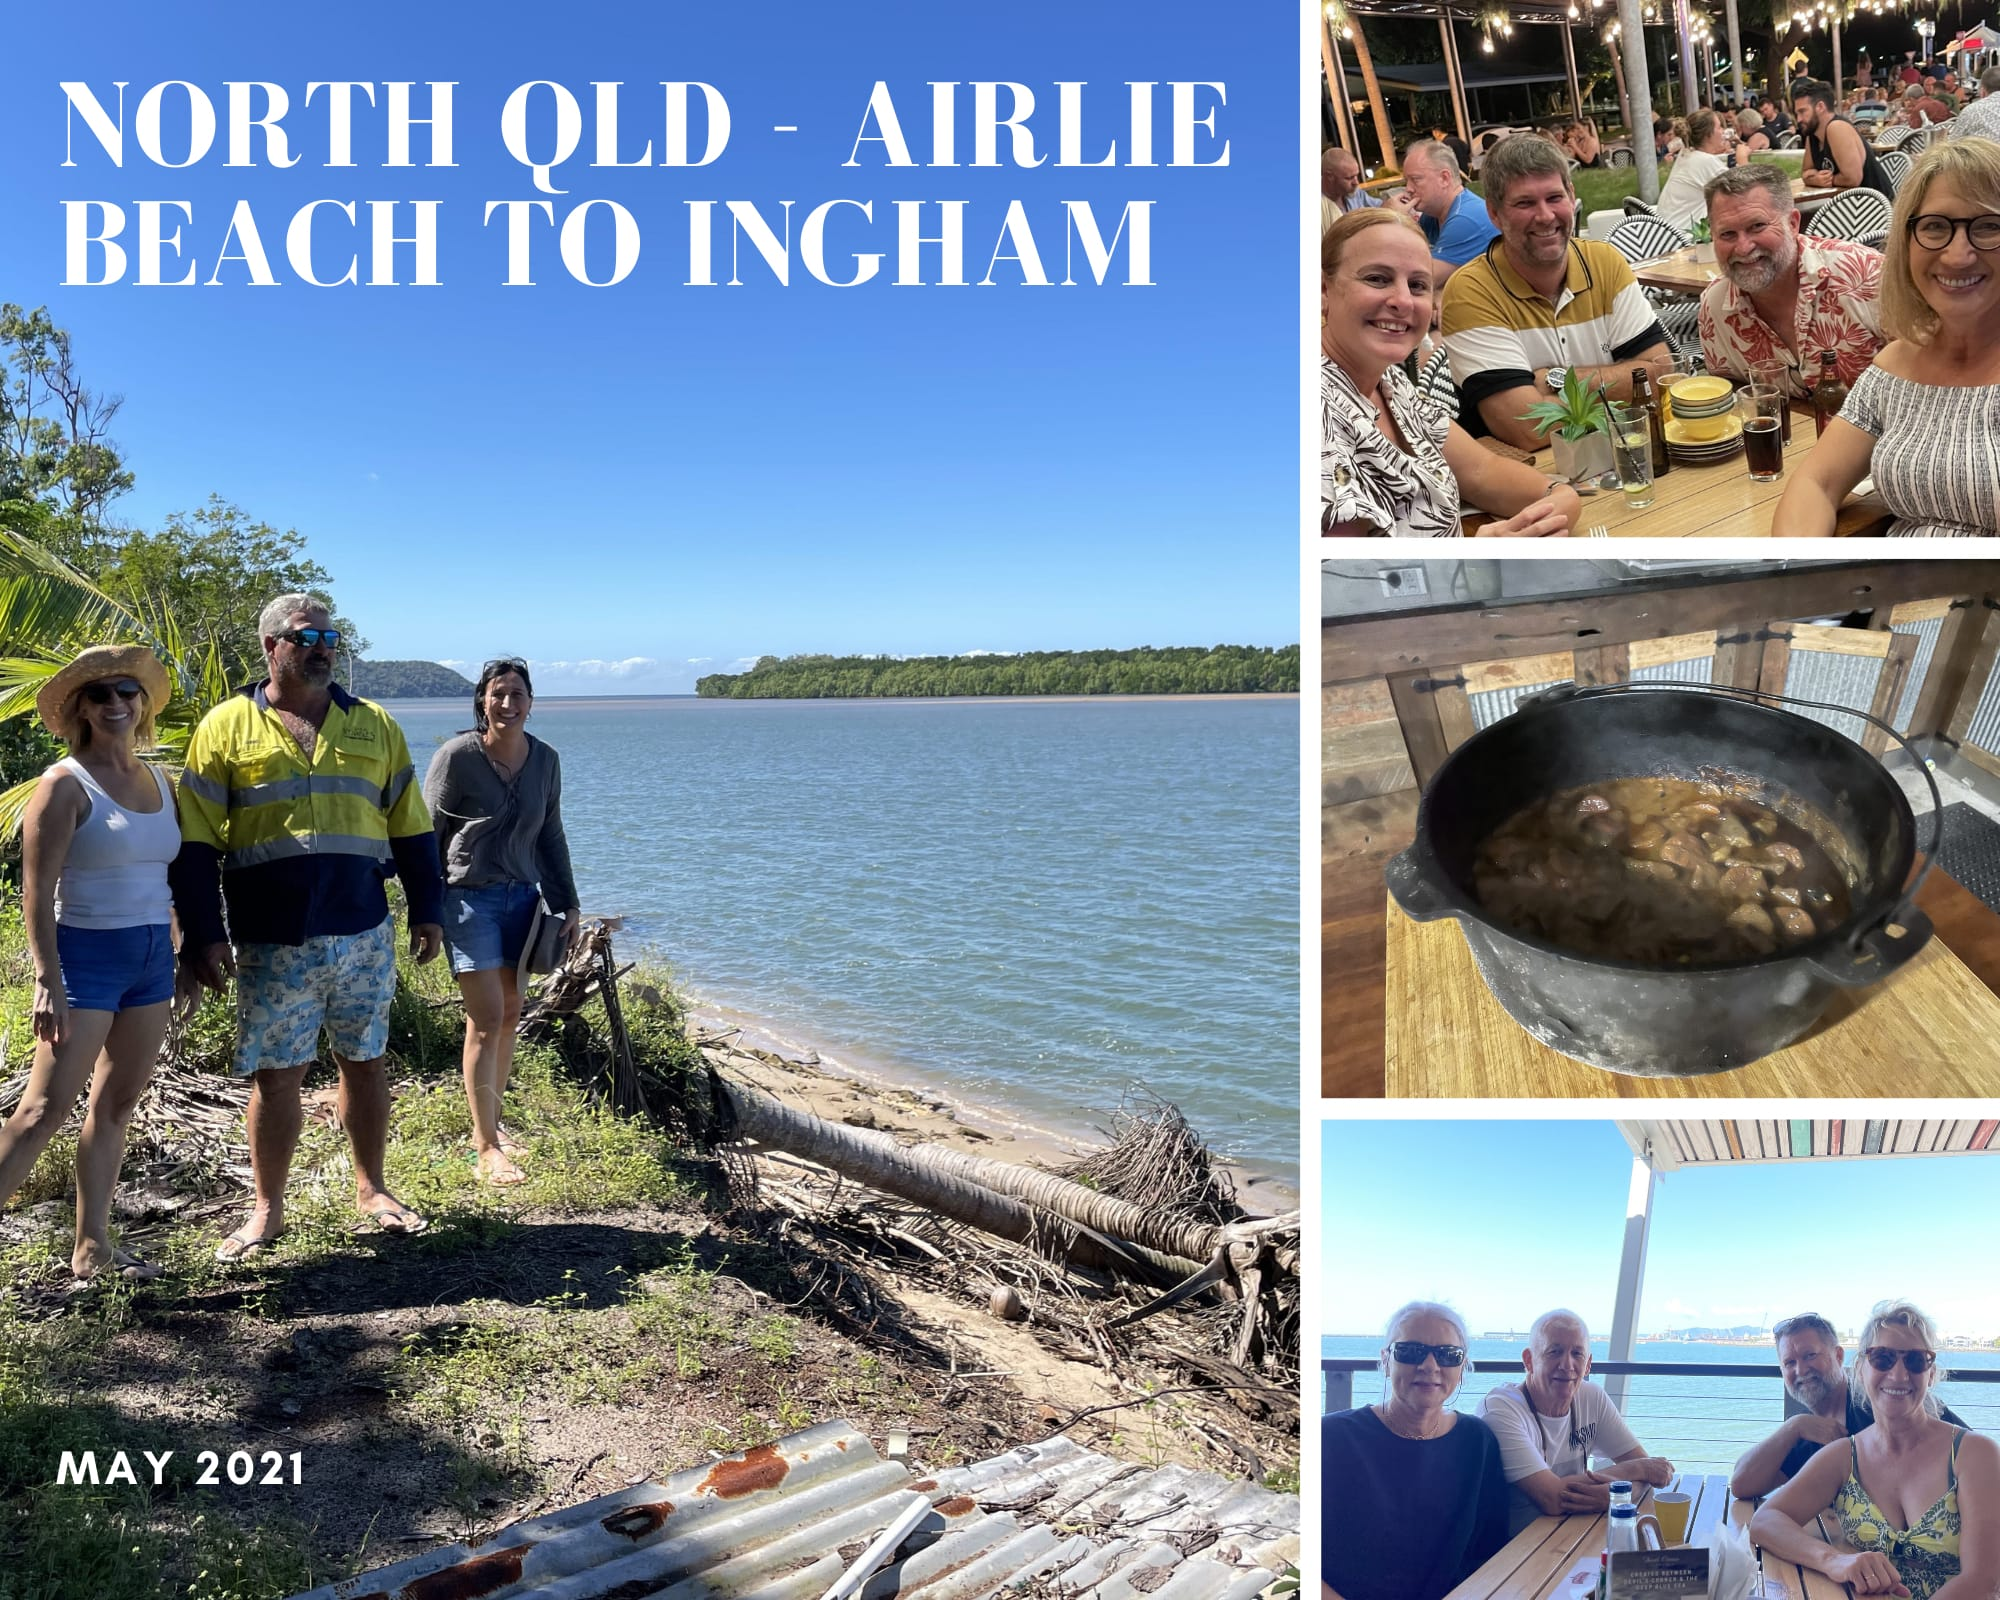 Photo collage of North Qld, Airlie Beach, Bowen, Townsville, Ingham